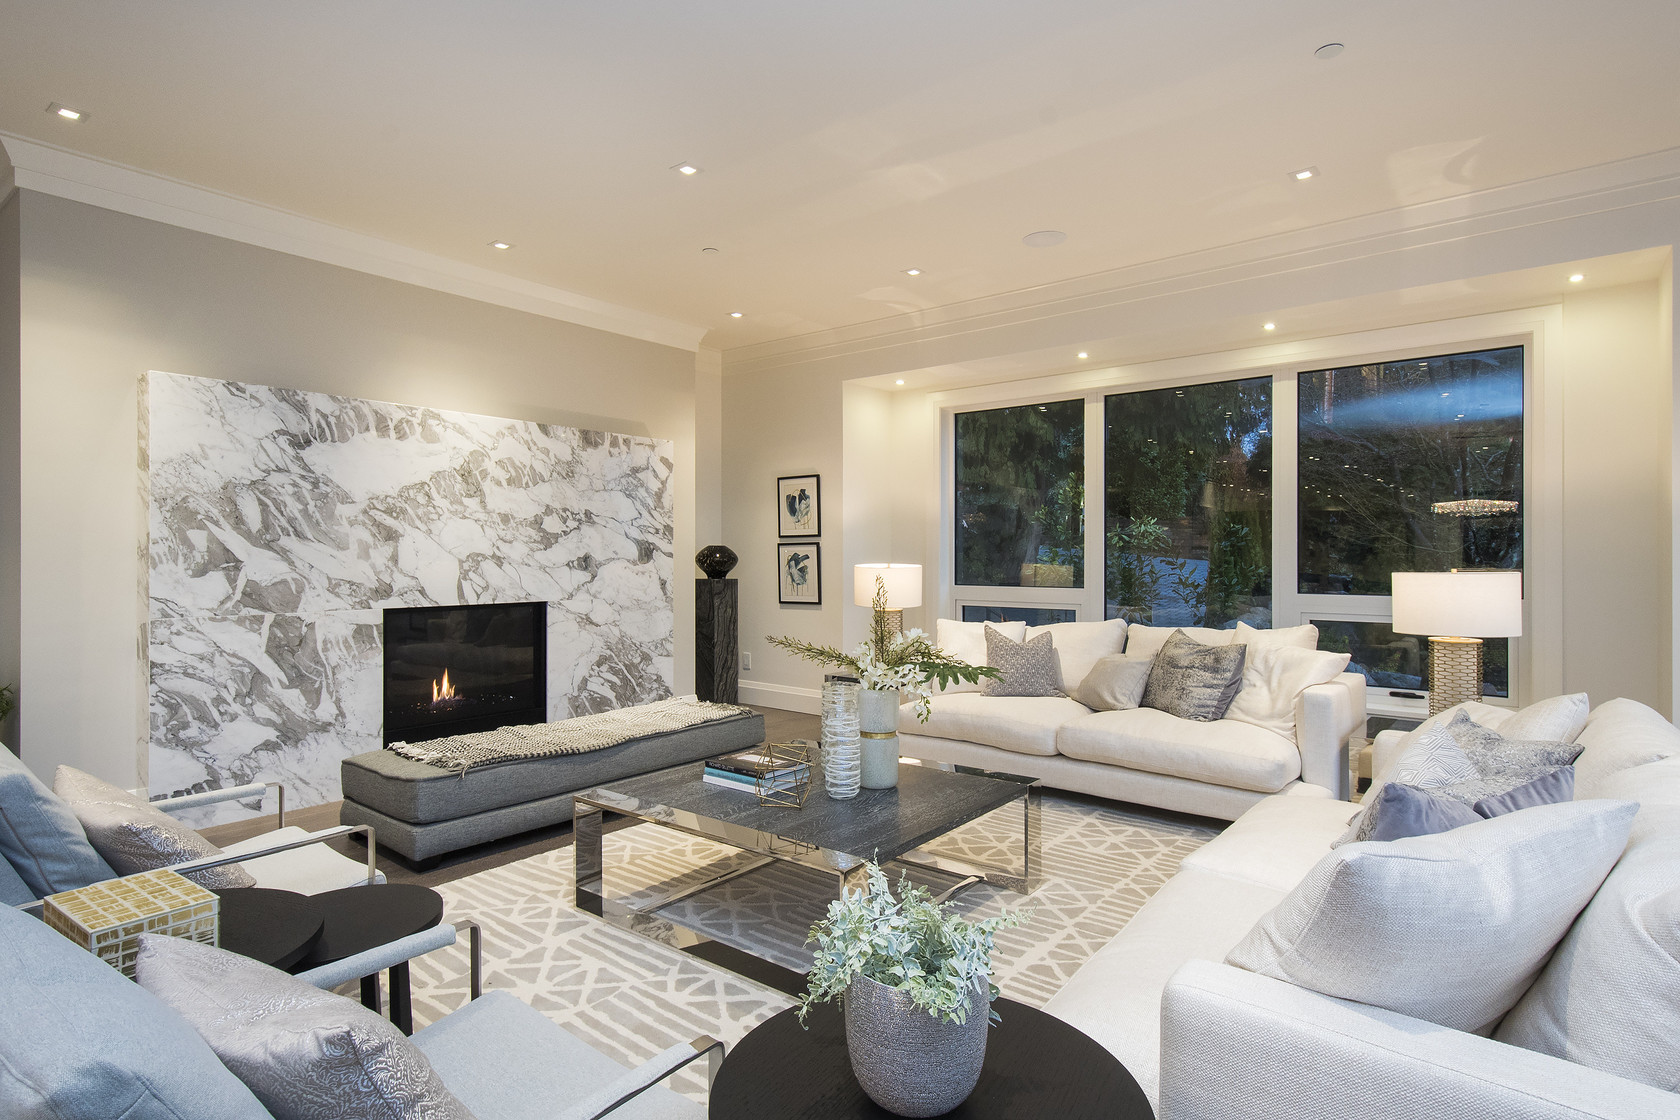 007 at 1677 29th Street, Altamont, West Vancouver